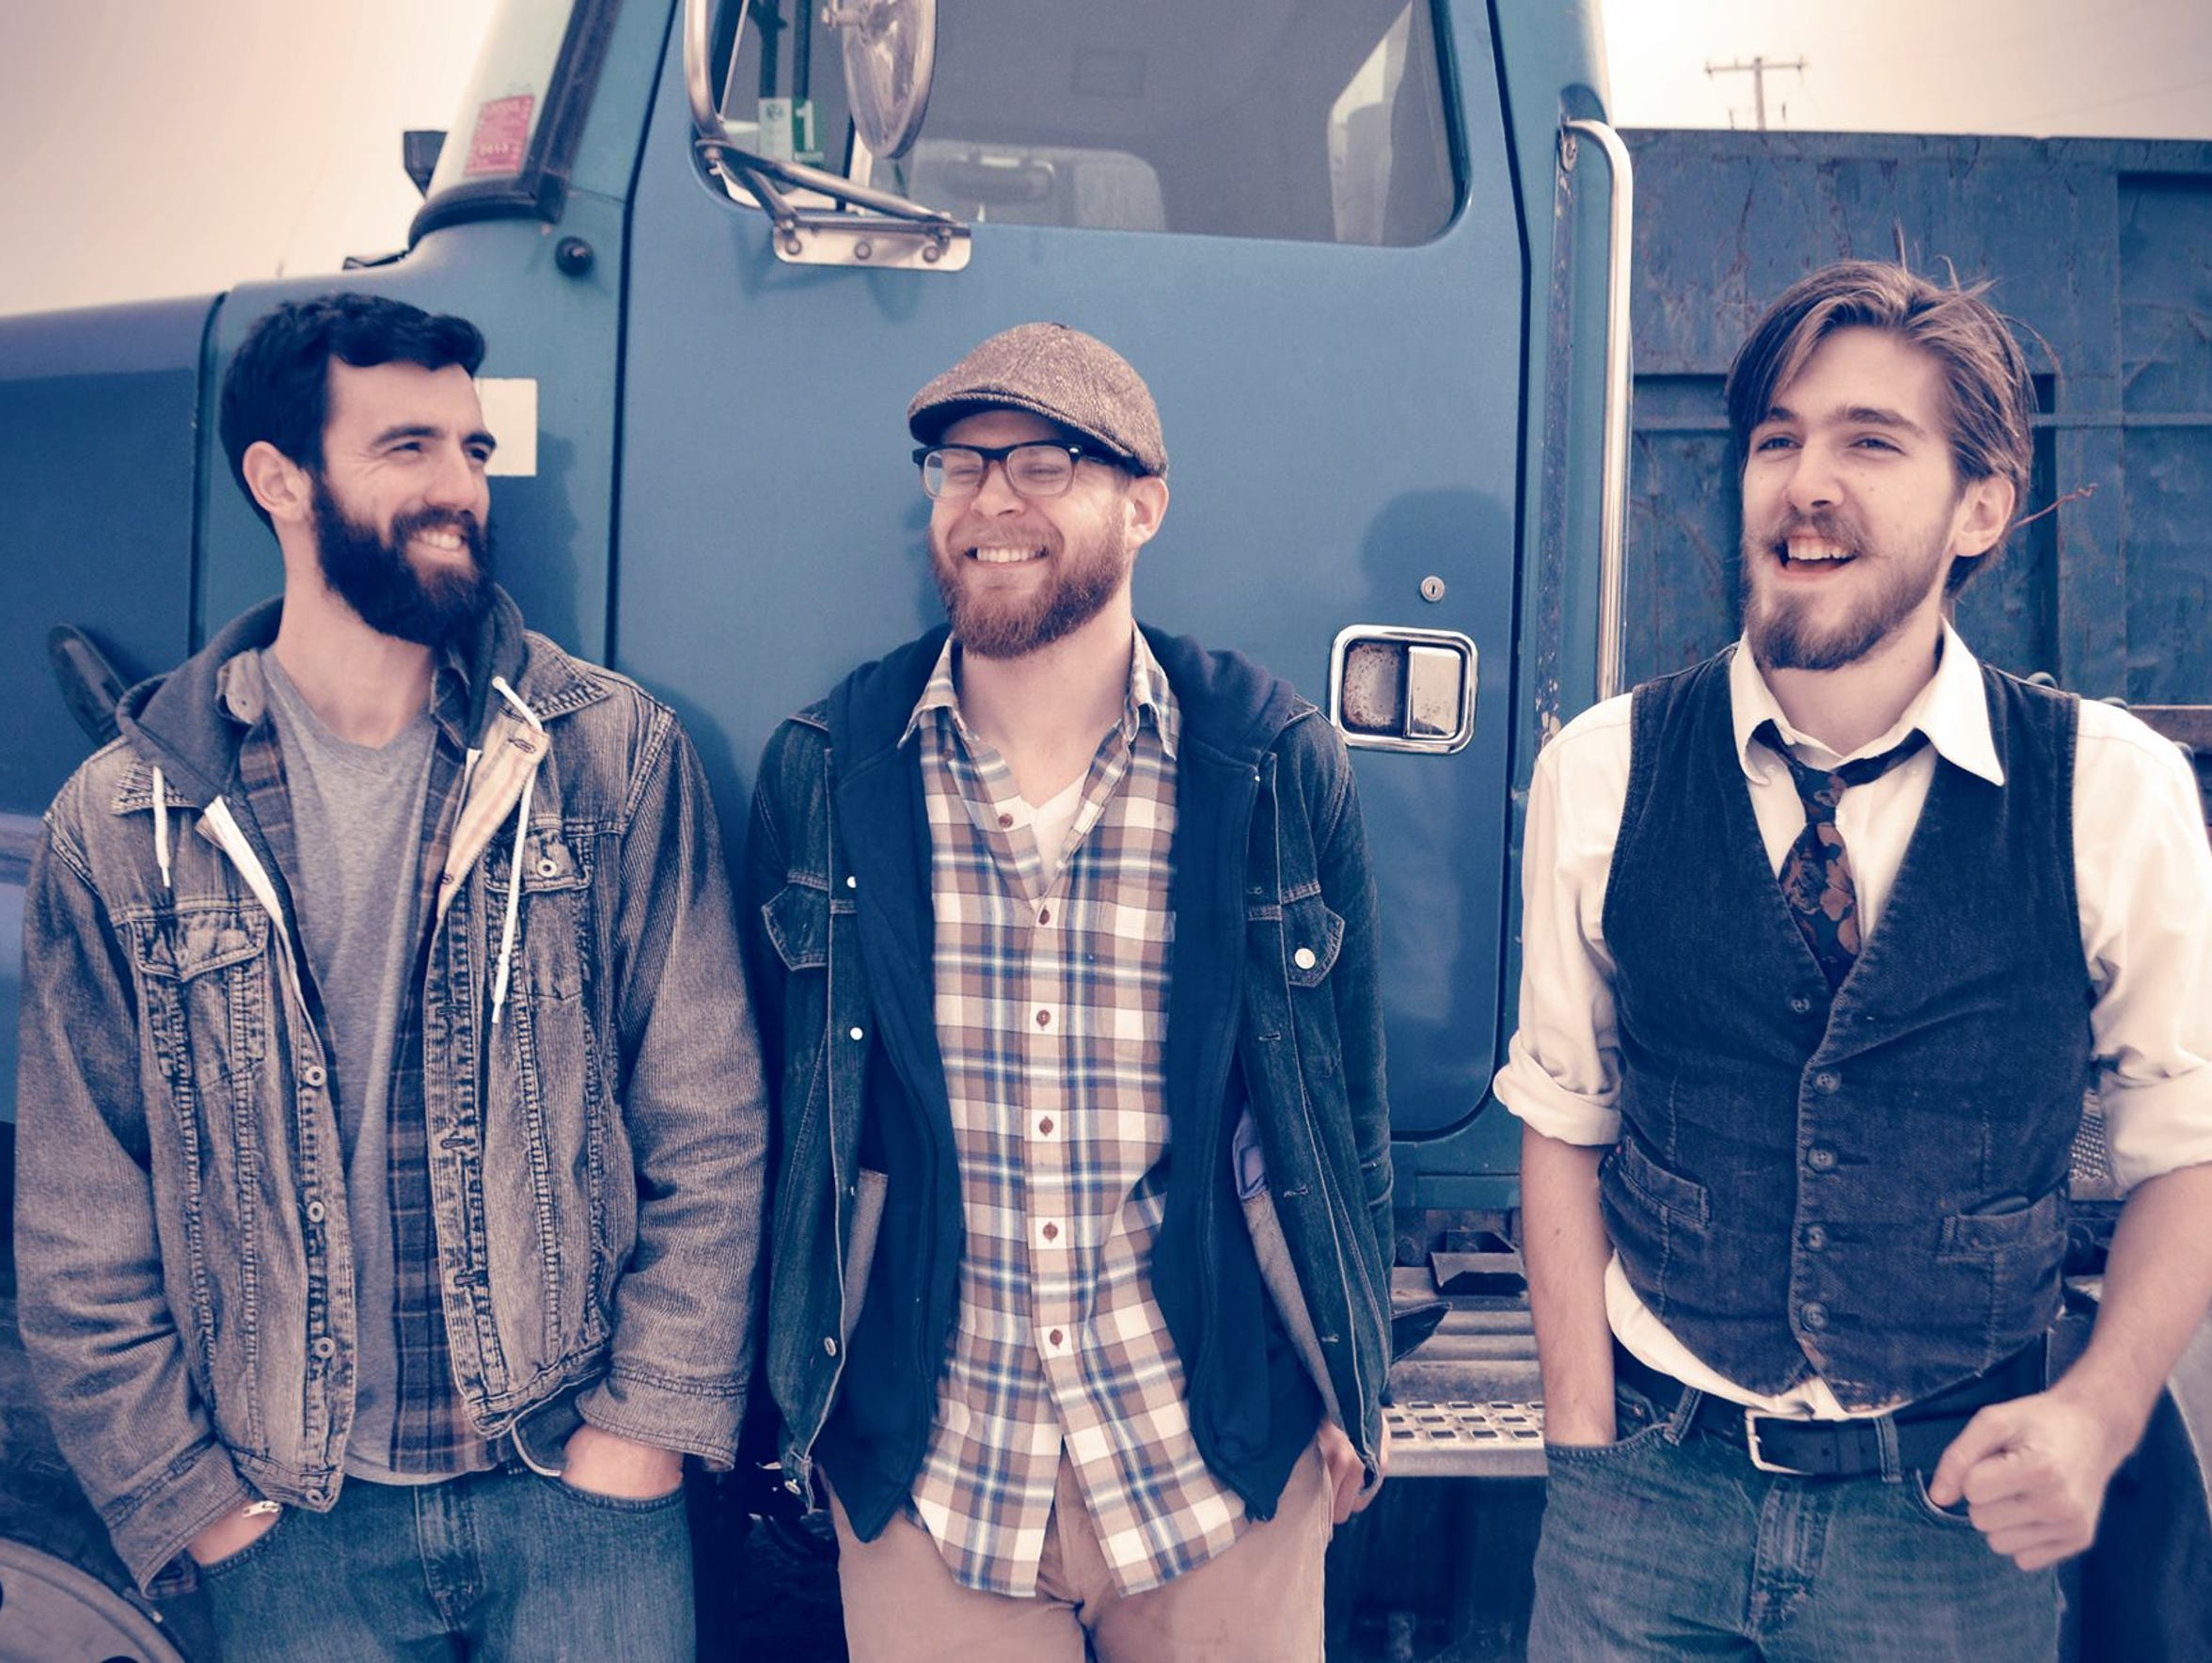 The band The Last Revel will perform at the Grand Theater